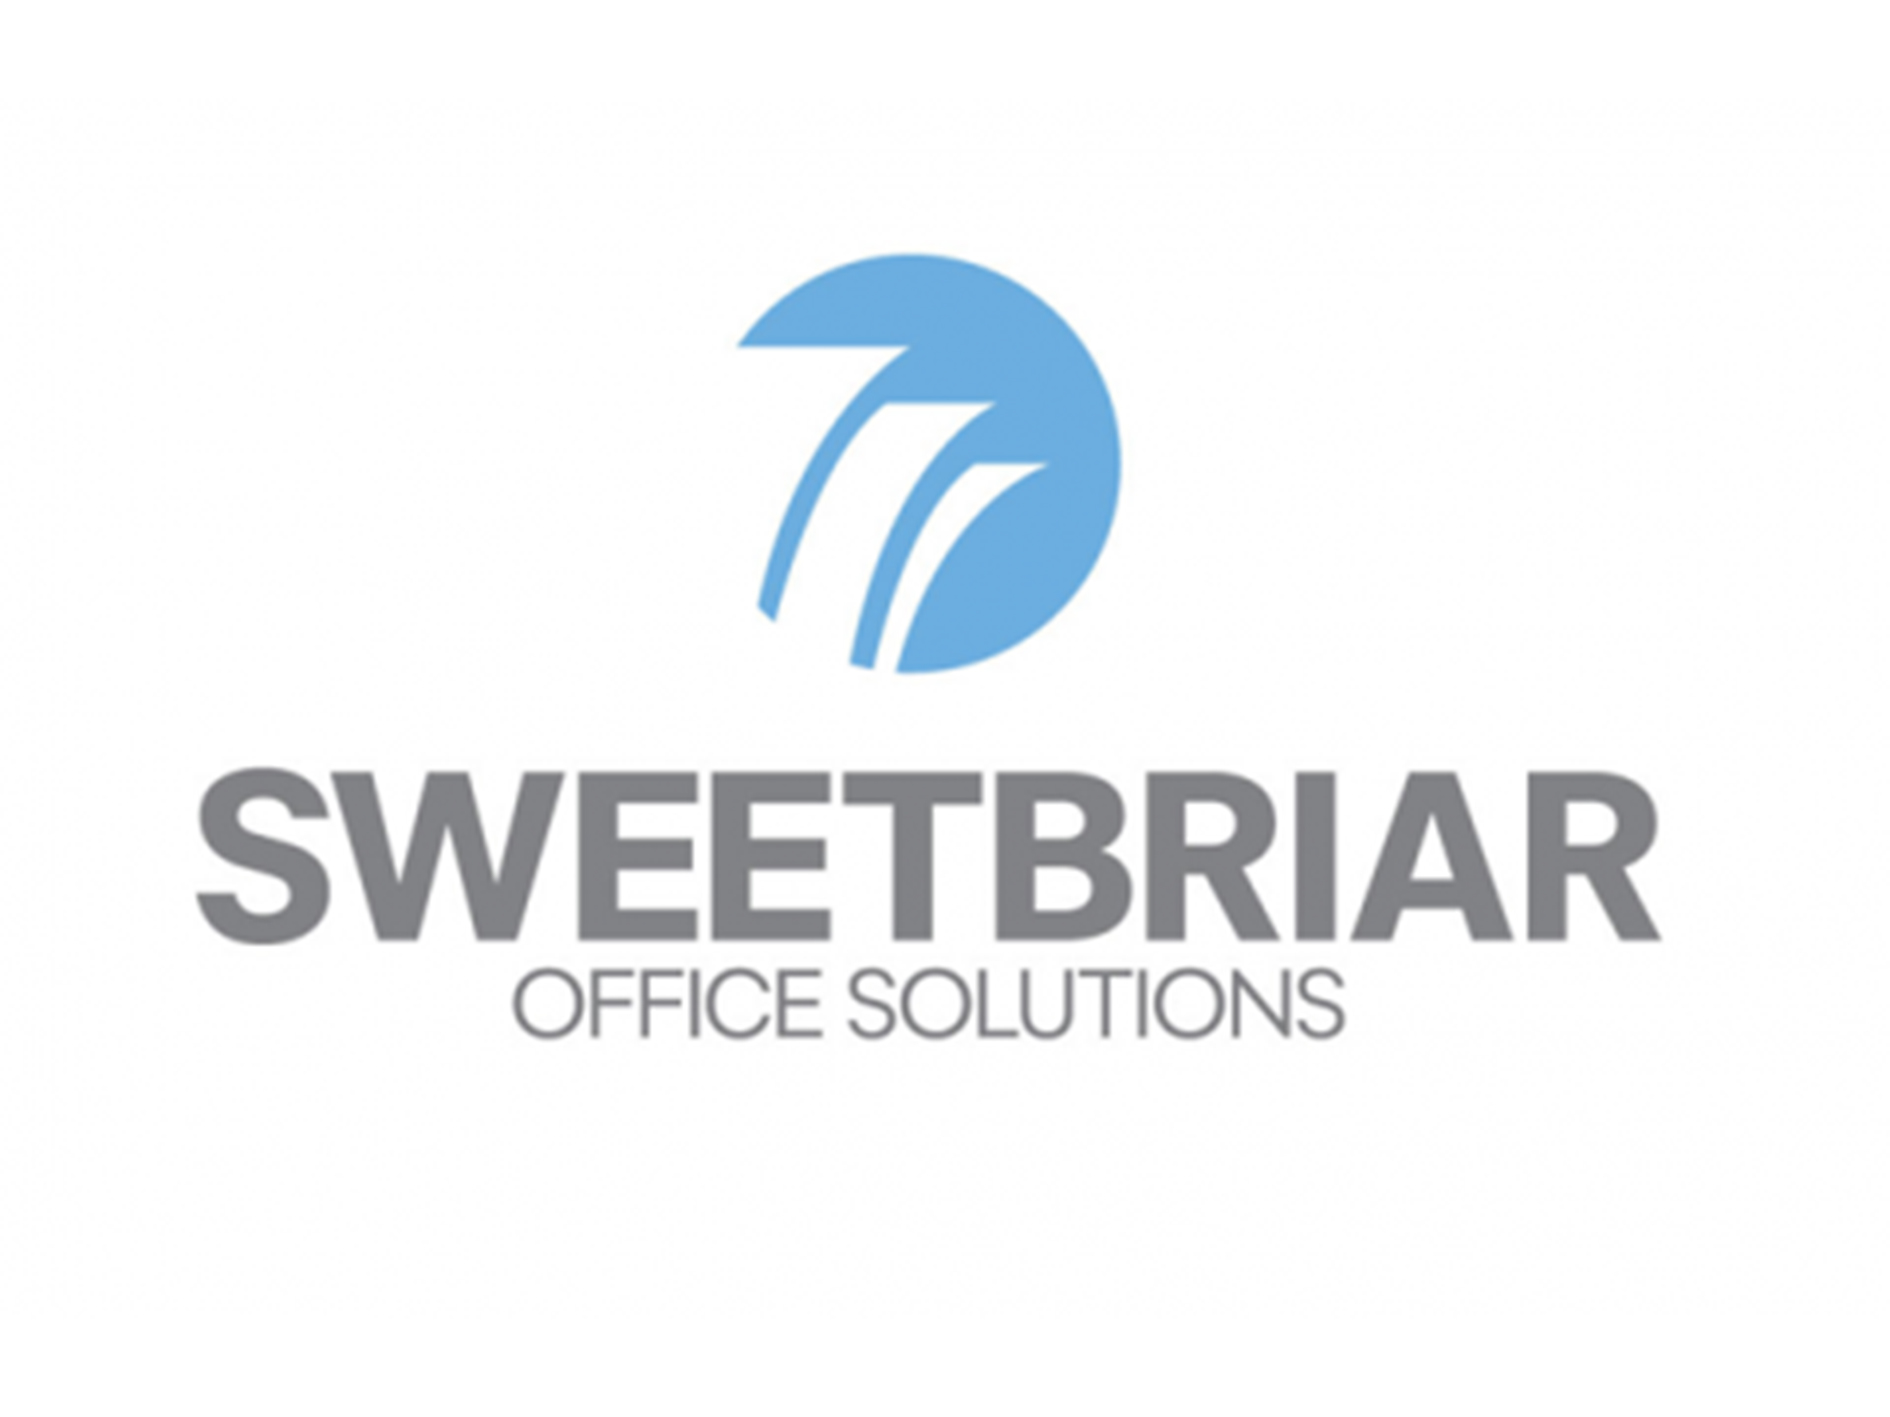 Sweetbriar Office Solutions